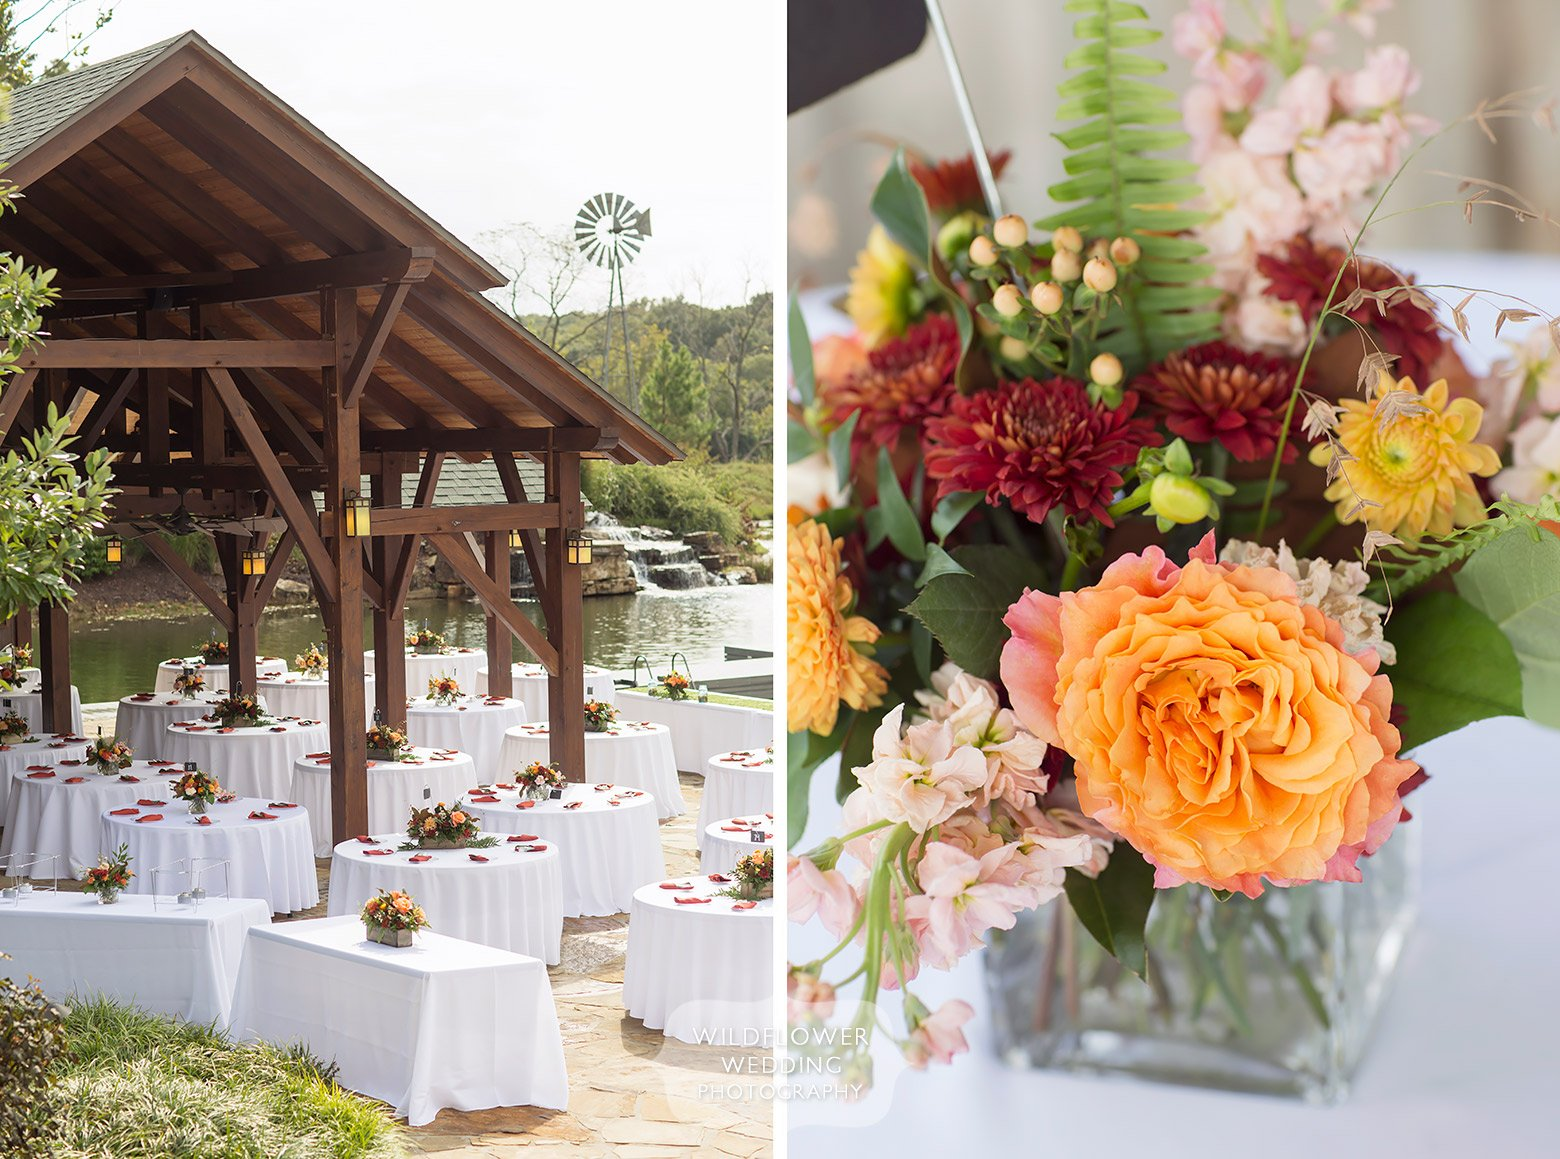 Rustic lodge wedding table set up in Hermann, MO.